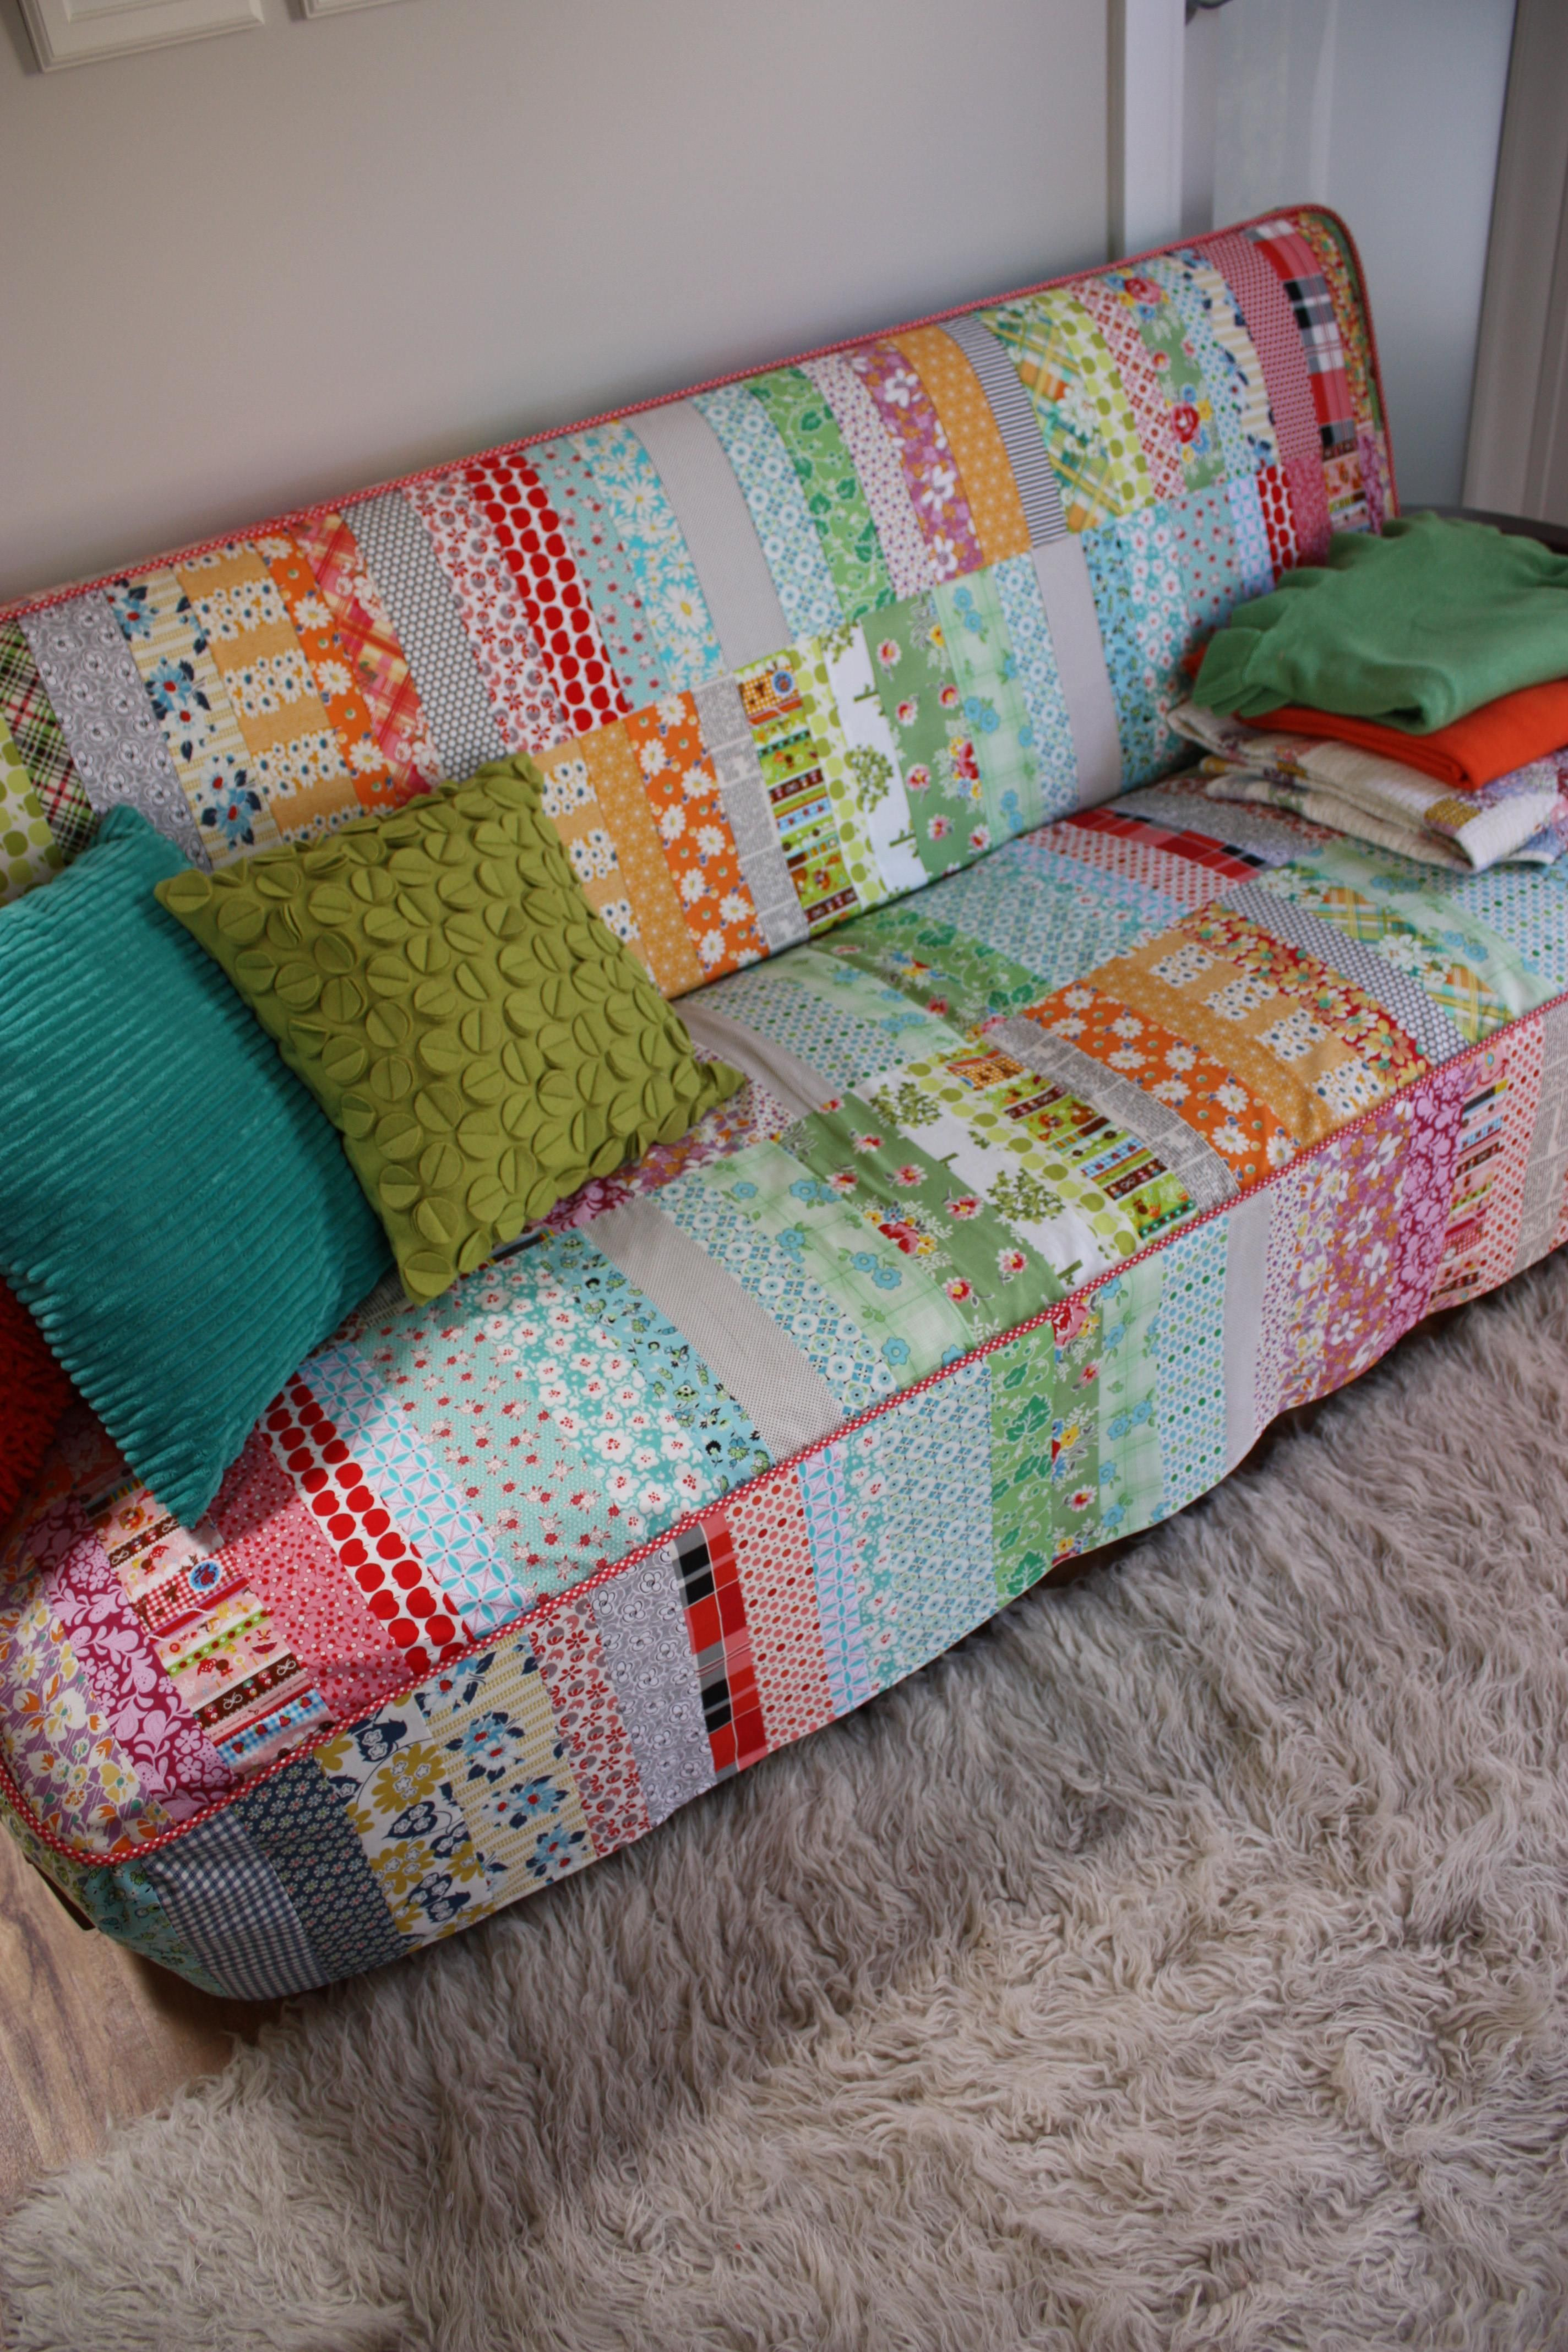 Couch Quilt Slipcover Love It If I Could Find Quilt Look